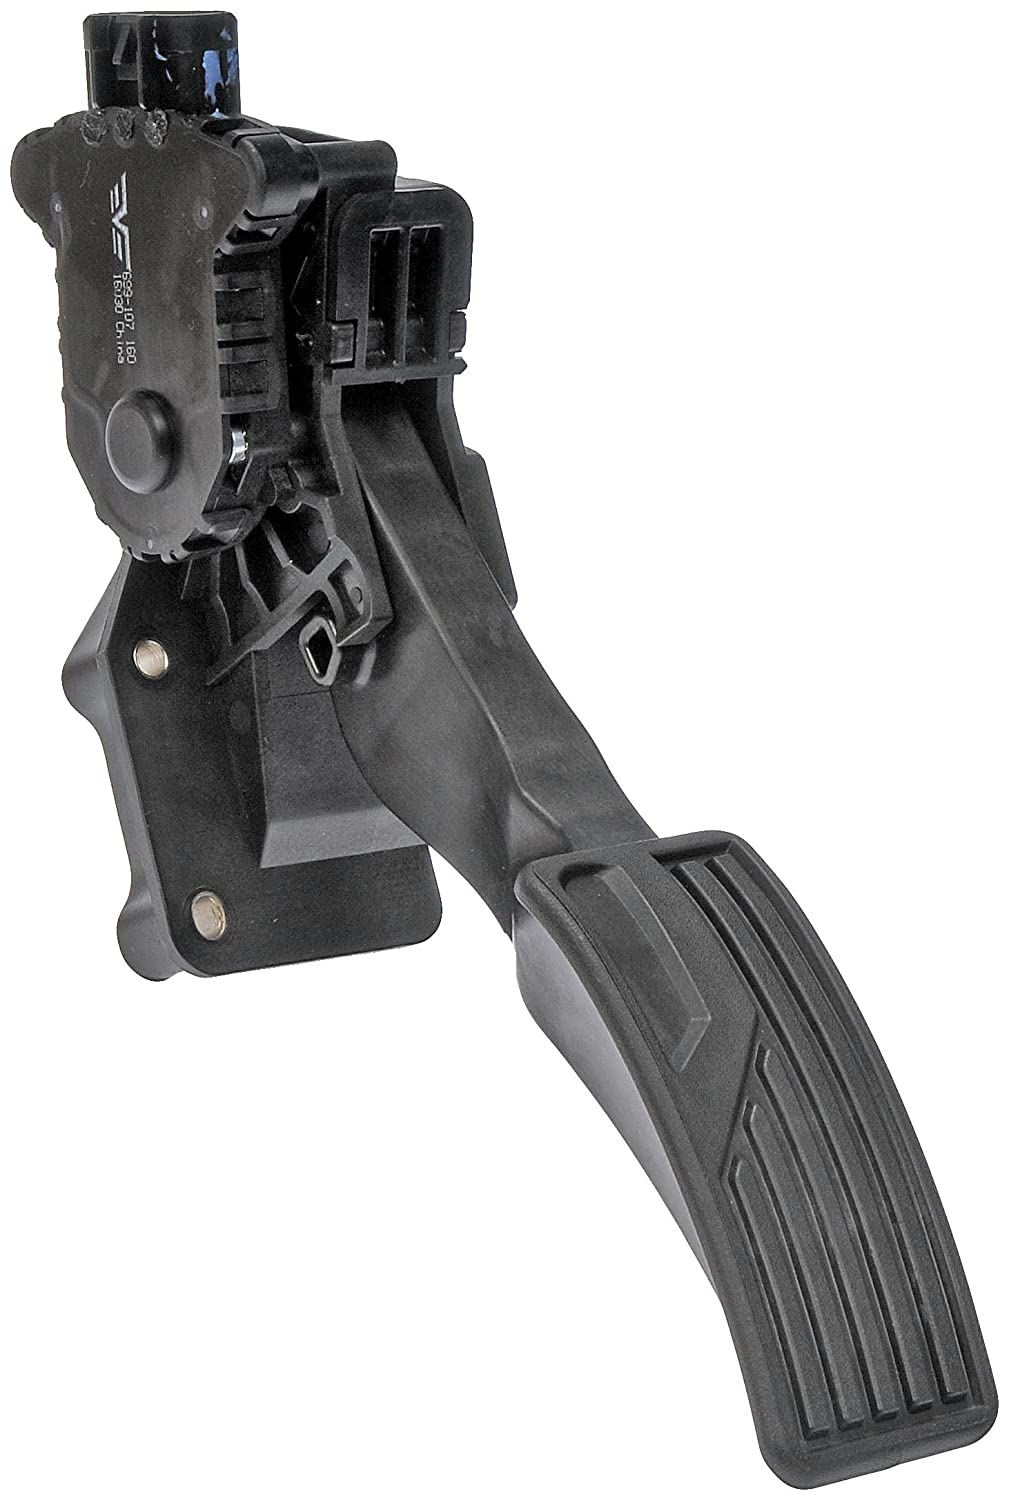 Dorman 699-107 Accelerator Pedal Assembly